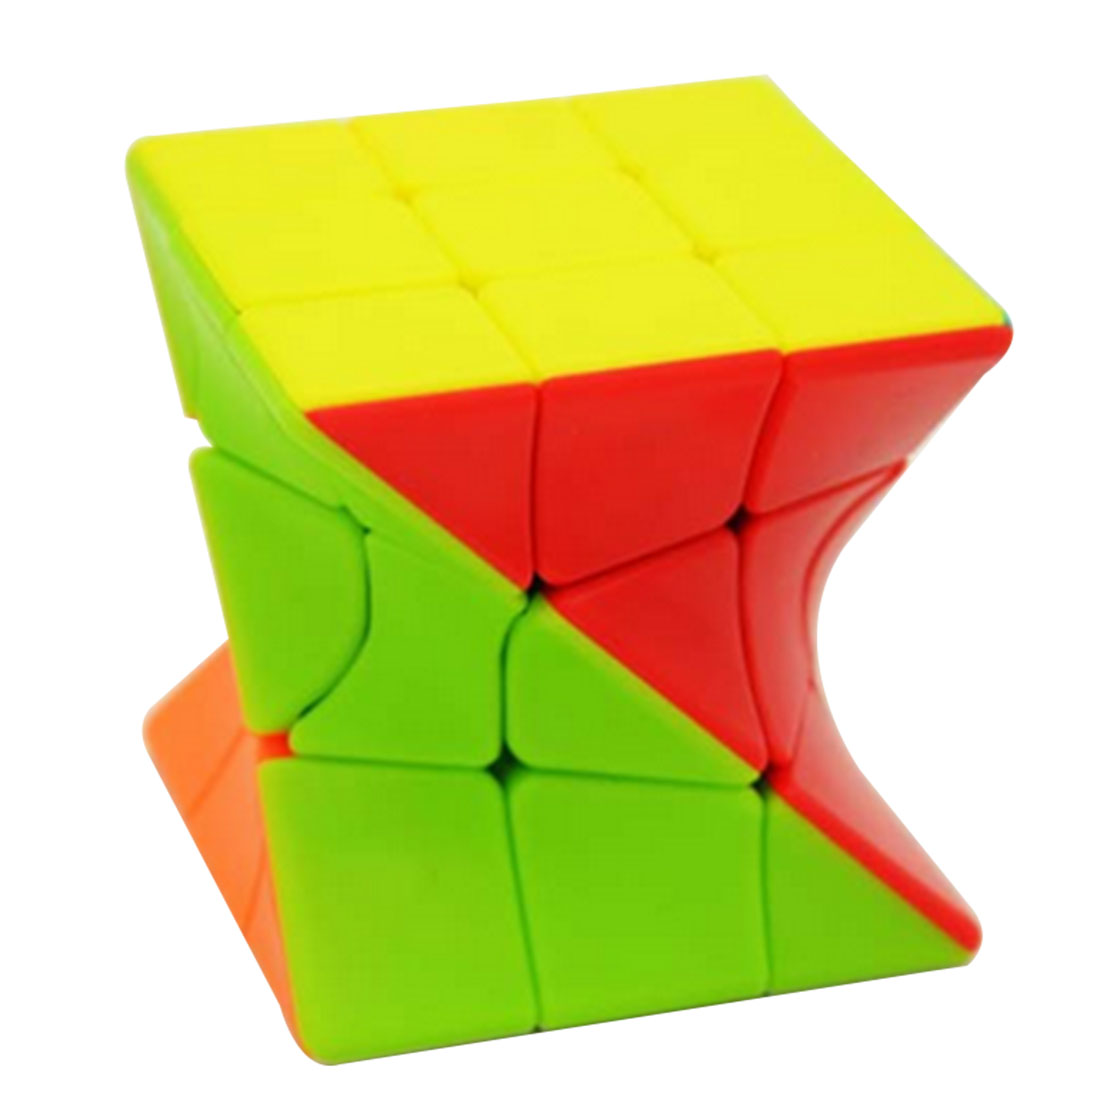 Puzzle Magic Cube Qiyi Mofangge Stars Cube Five Pointed Pentacle Cube Special Professional Speed Cube Educational Gift Logic Toy Magic Cubes